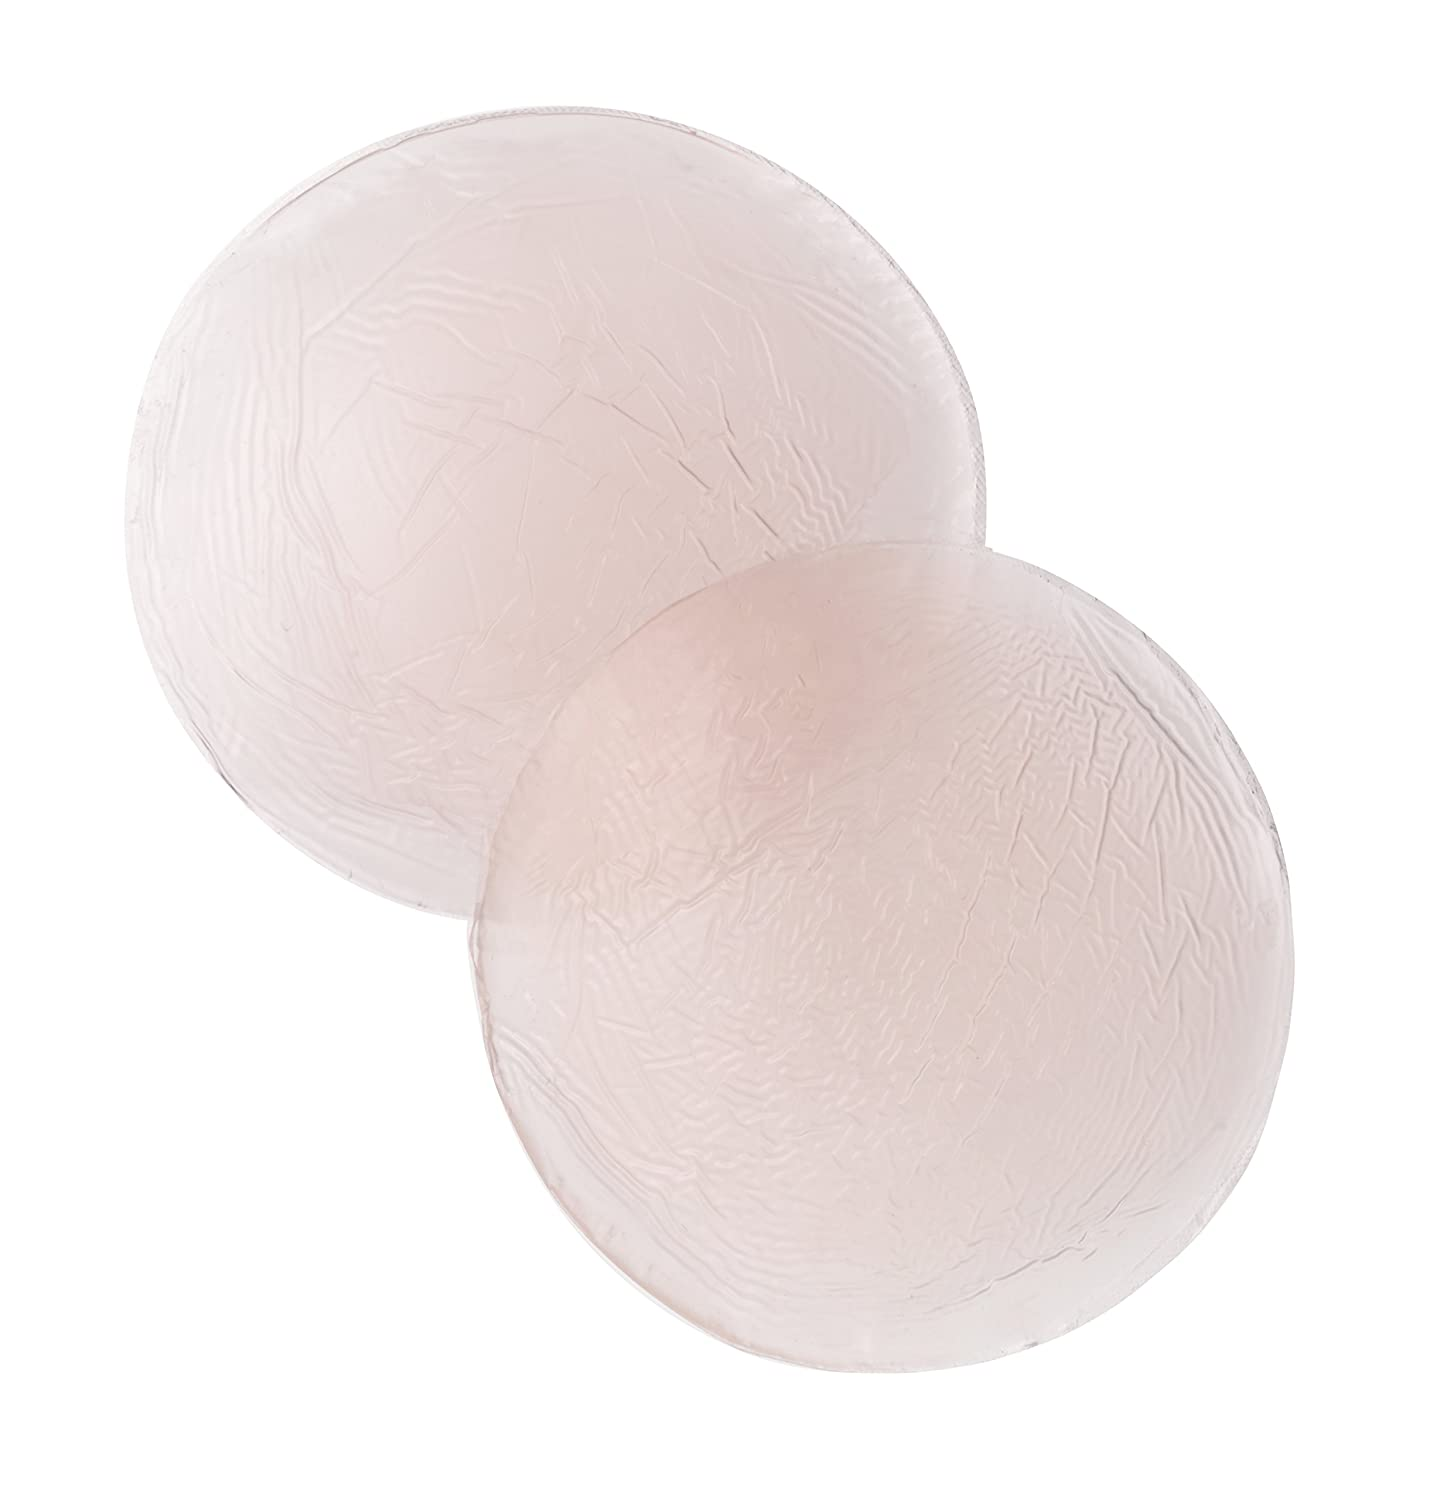 Eylure Silicone Nipple Covers Original Additions 6008017